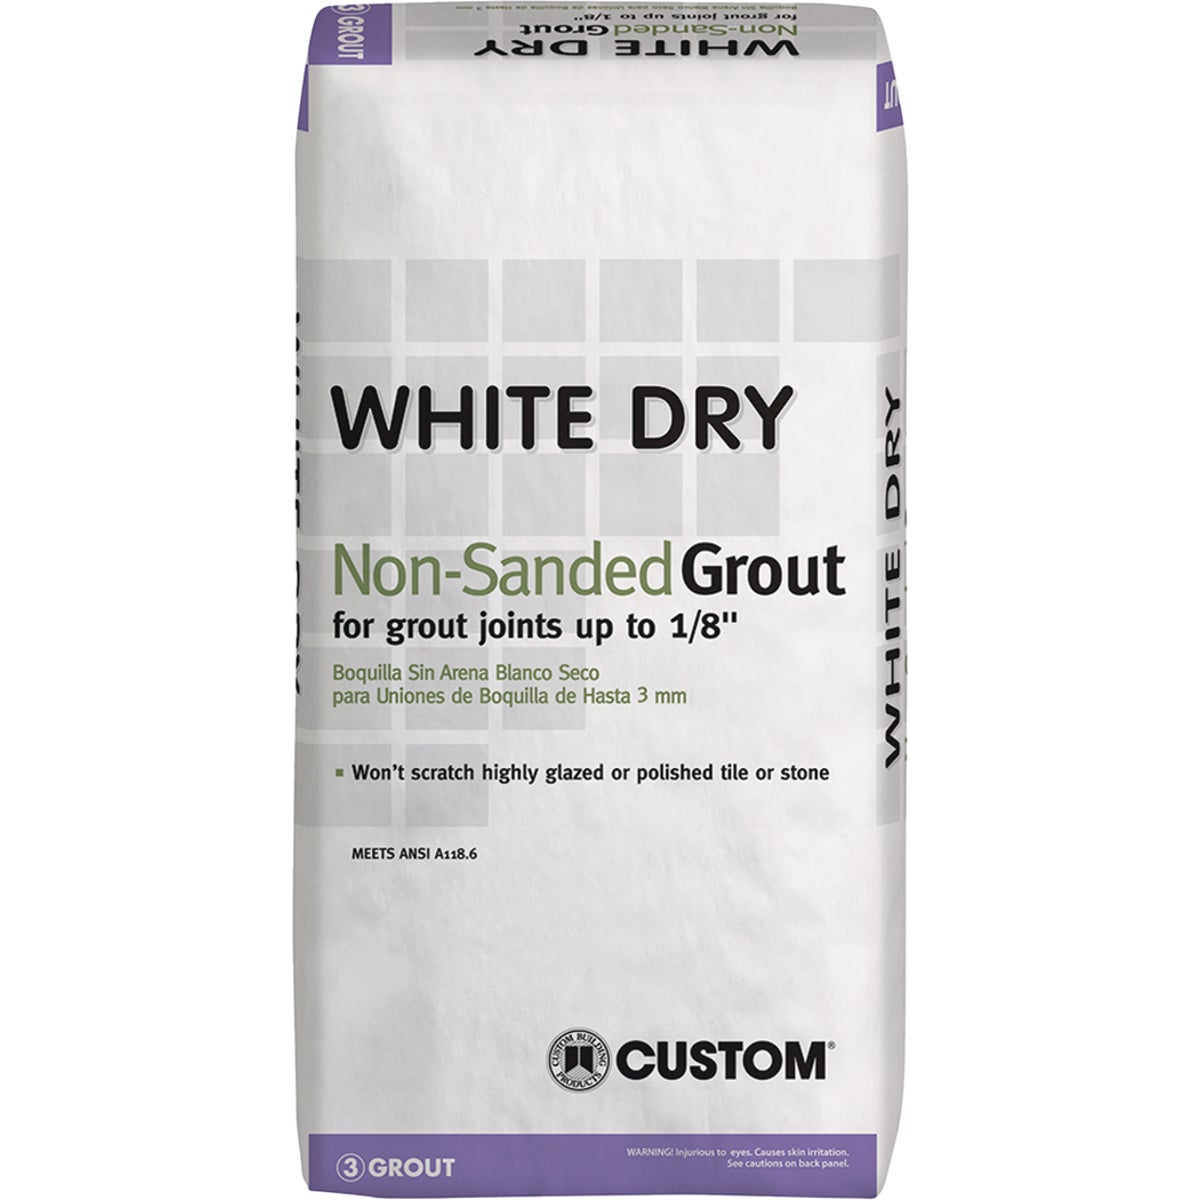 25LB WHITE TILE GROUT - WDG25 by Custom Building Prod